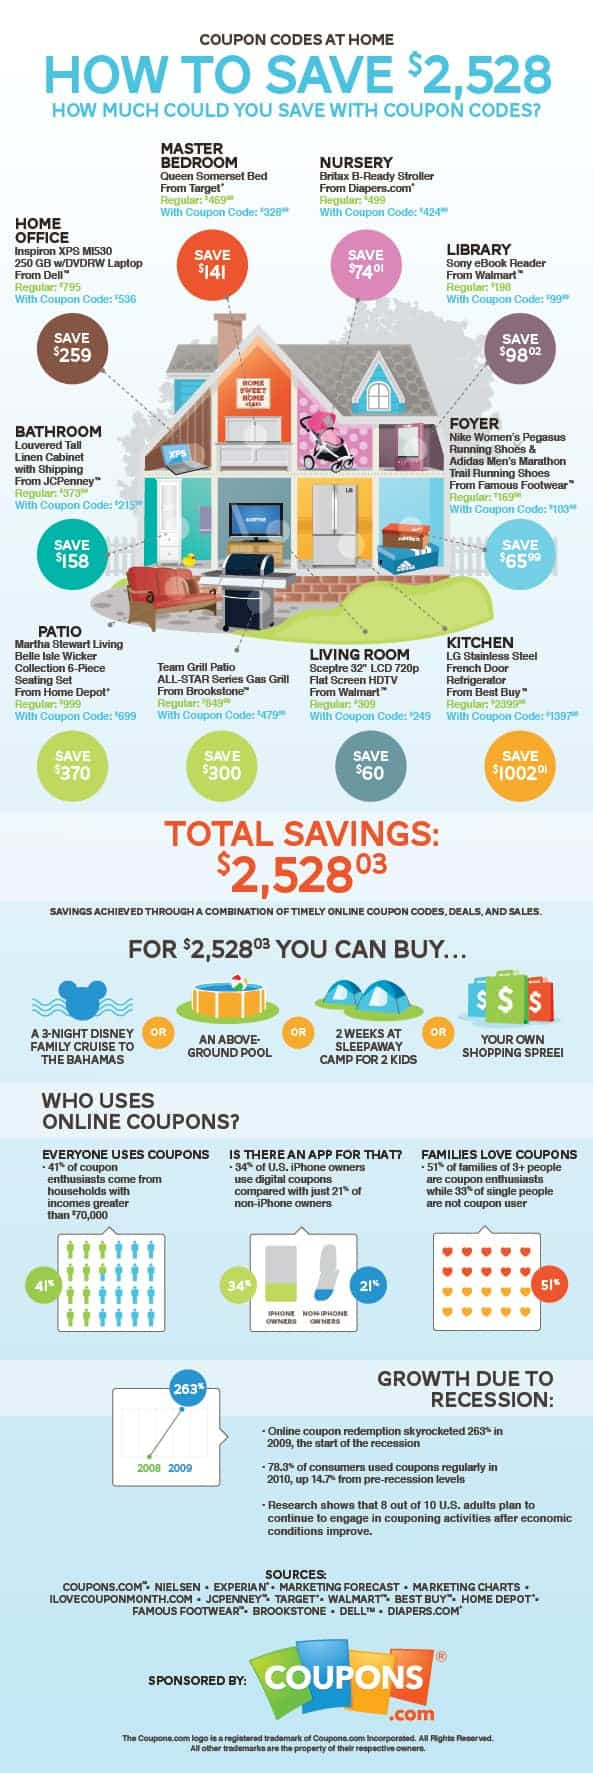 Coupon Codes At Home